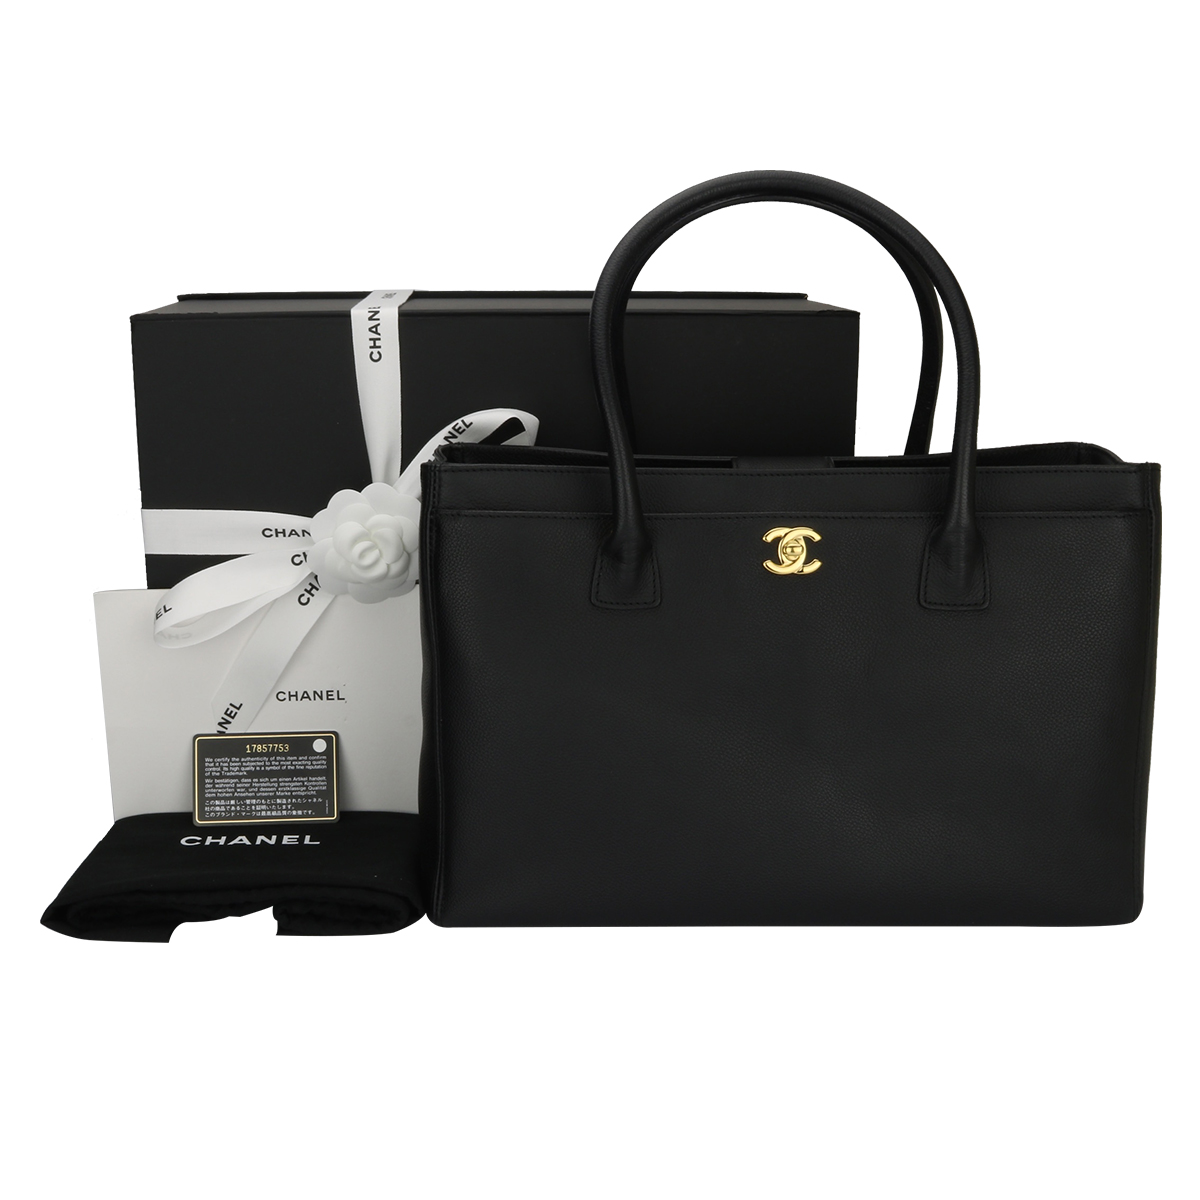 cf6c8475ef6b Chanel Executive Tote Price 2018 | Stanford Center for Opportunity ...